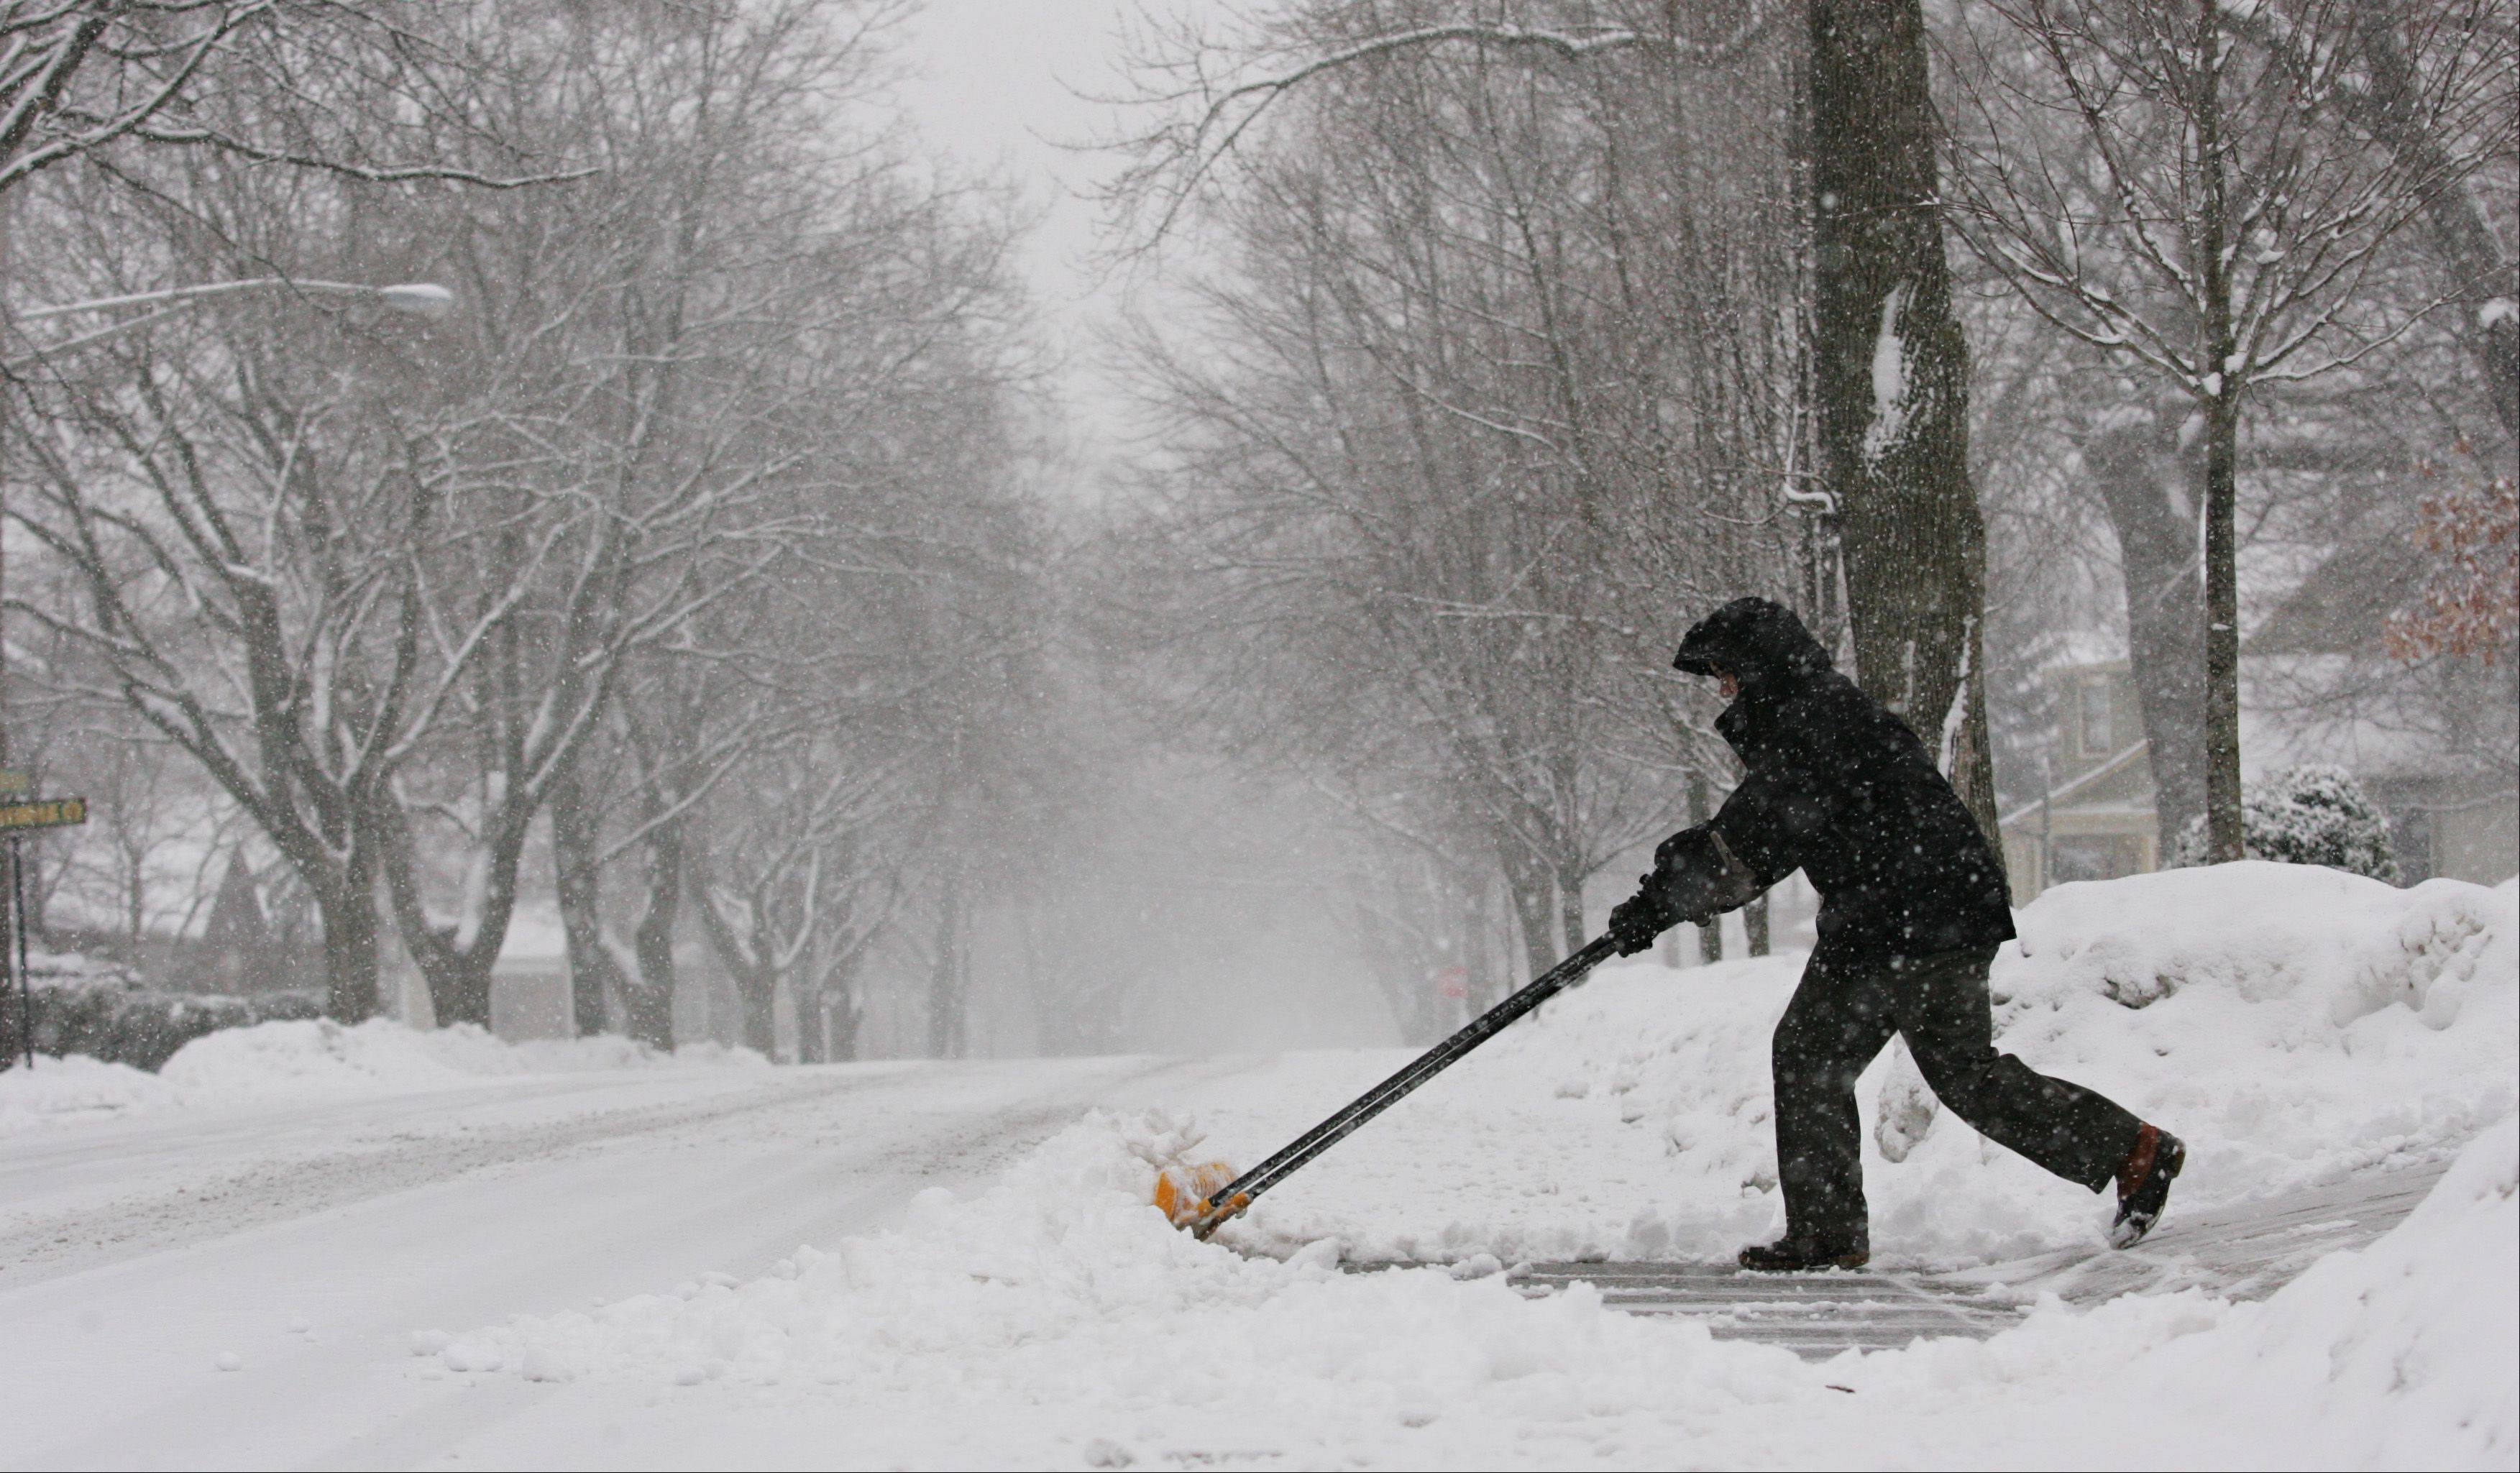 Jay Guevara of West Dundee shovels snow from his driveway into the street Tuesday morning as the largest winter storm of the season begins to intensify. Guevara was clearing a path to get to work, which thankfully wasn't too far up the road in Algonquin.